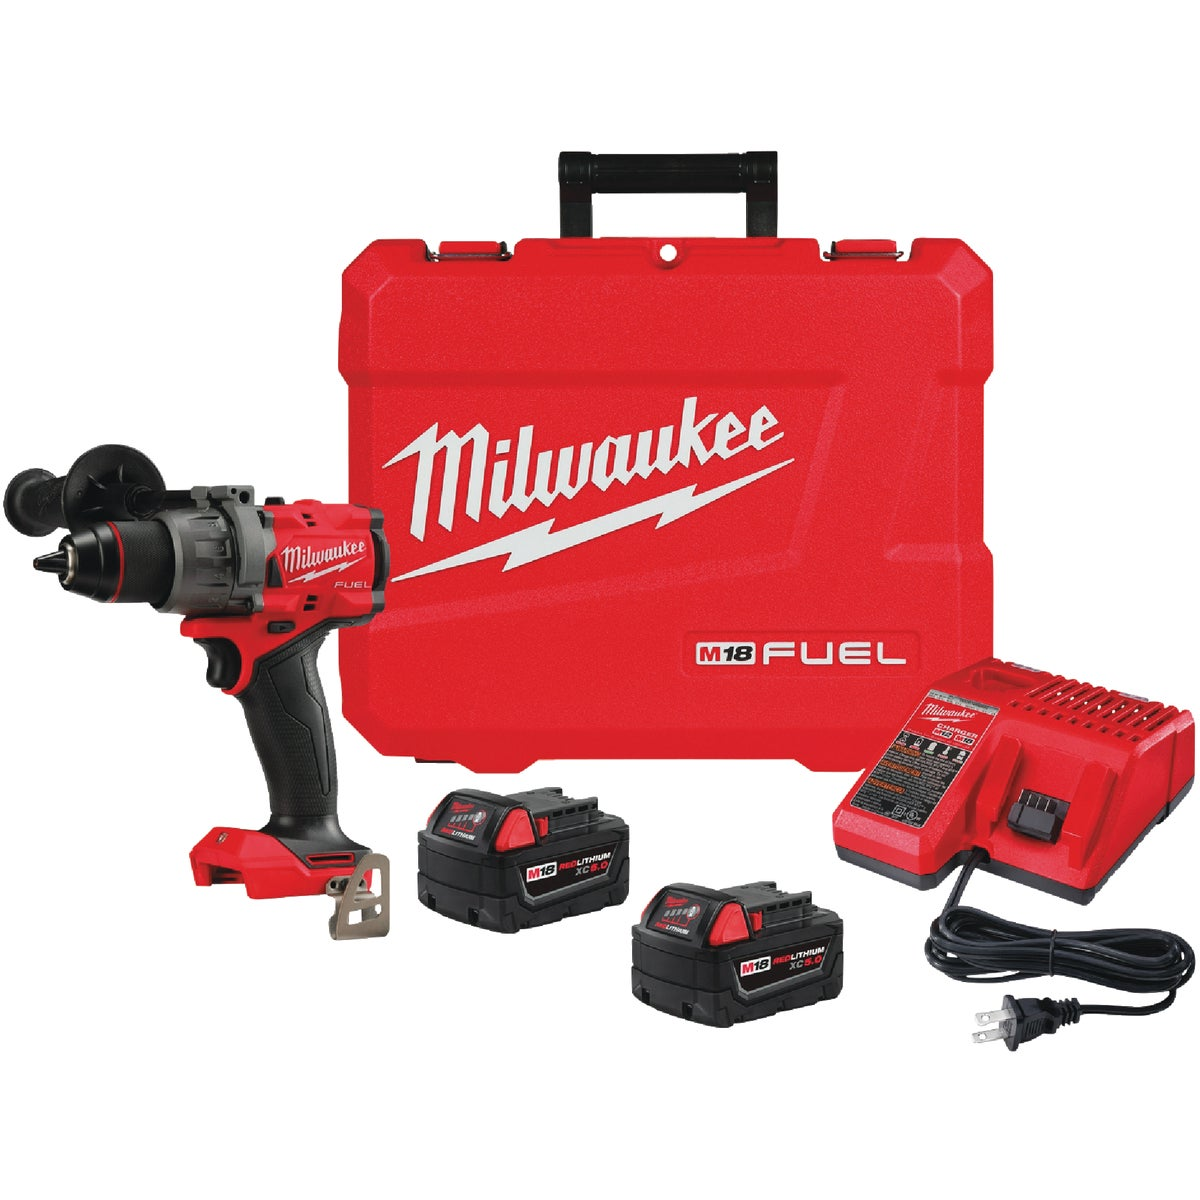 M18 FUEL HAMMER DRILL - 2604-22 by Milwaukee Elec Tool